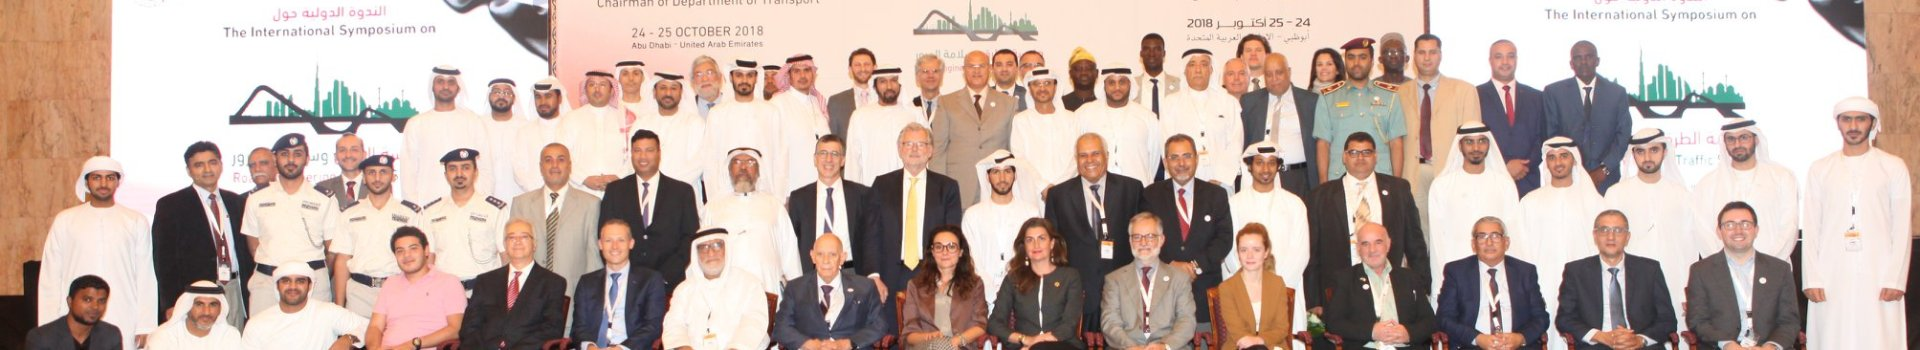 "IRF at the ""International Conference on Road Safety and Mobility"" in Abu Dhabi, UAE"